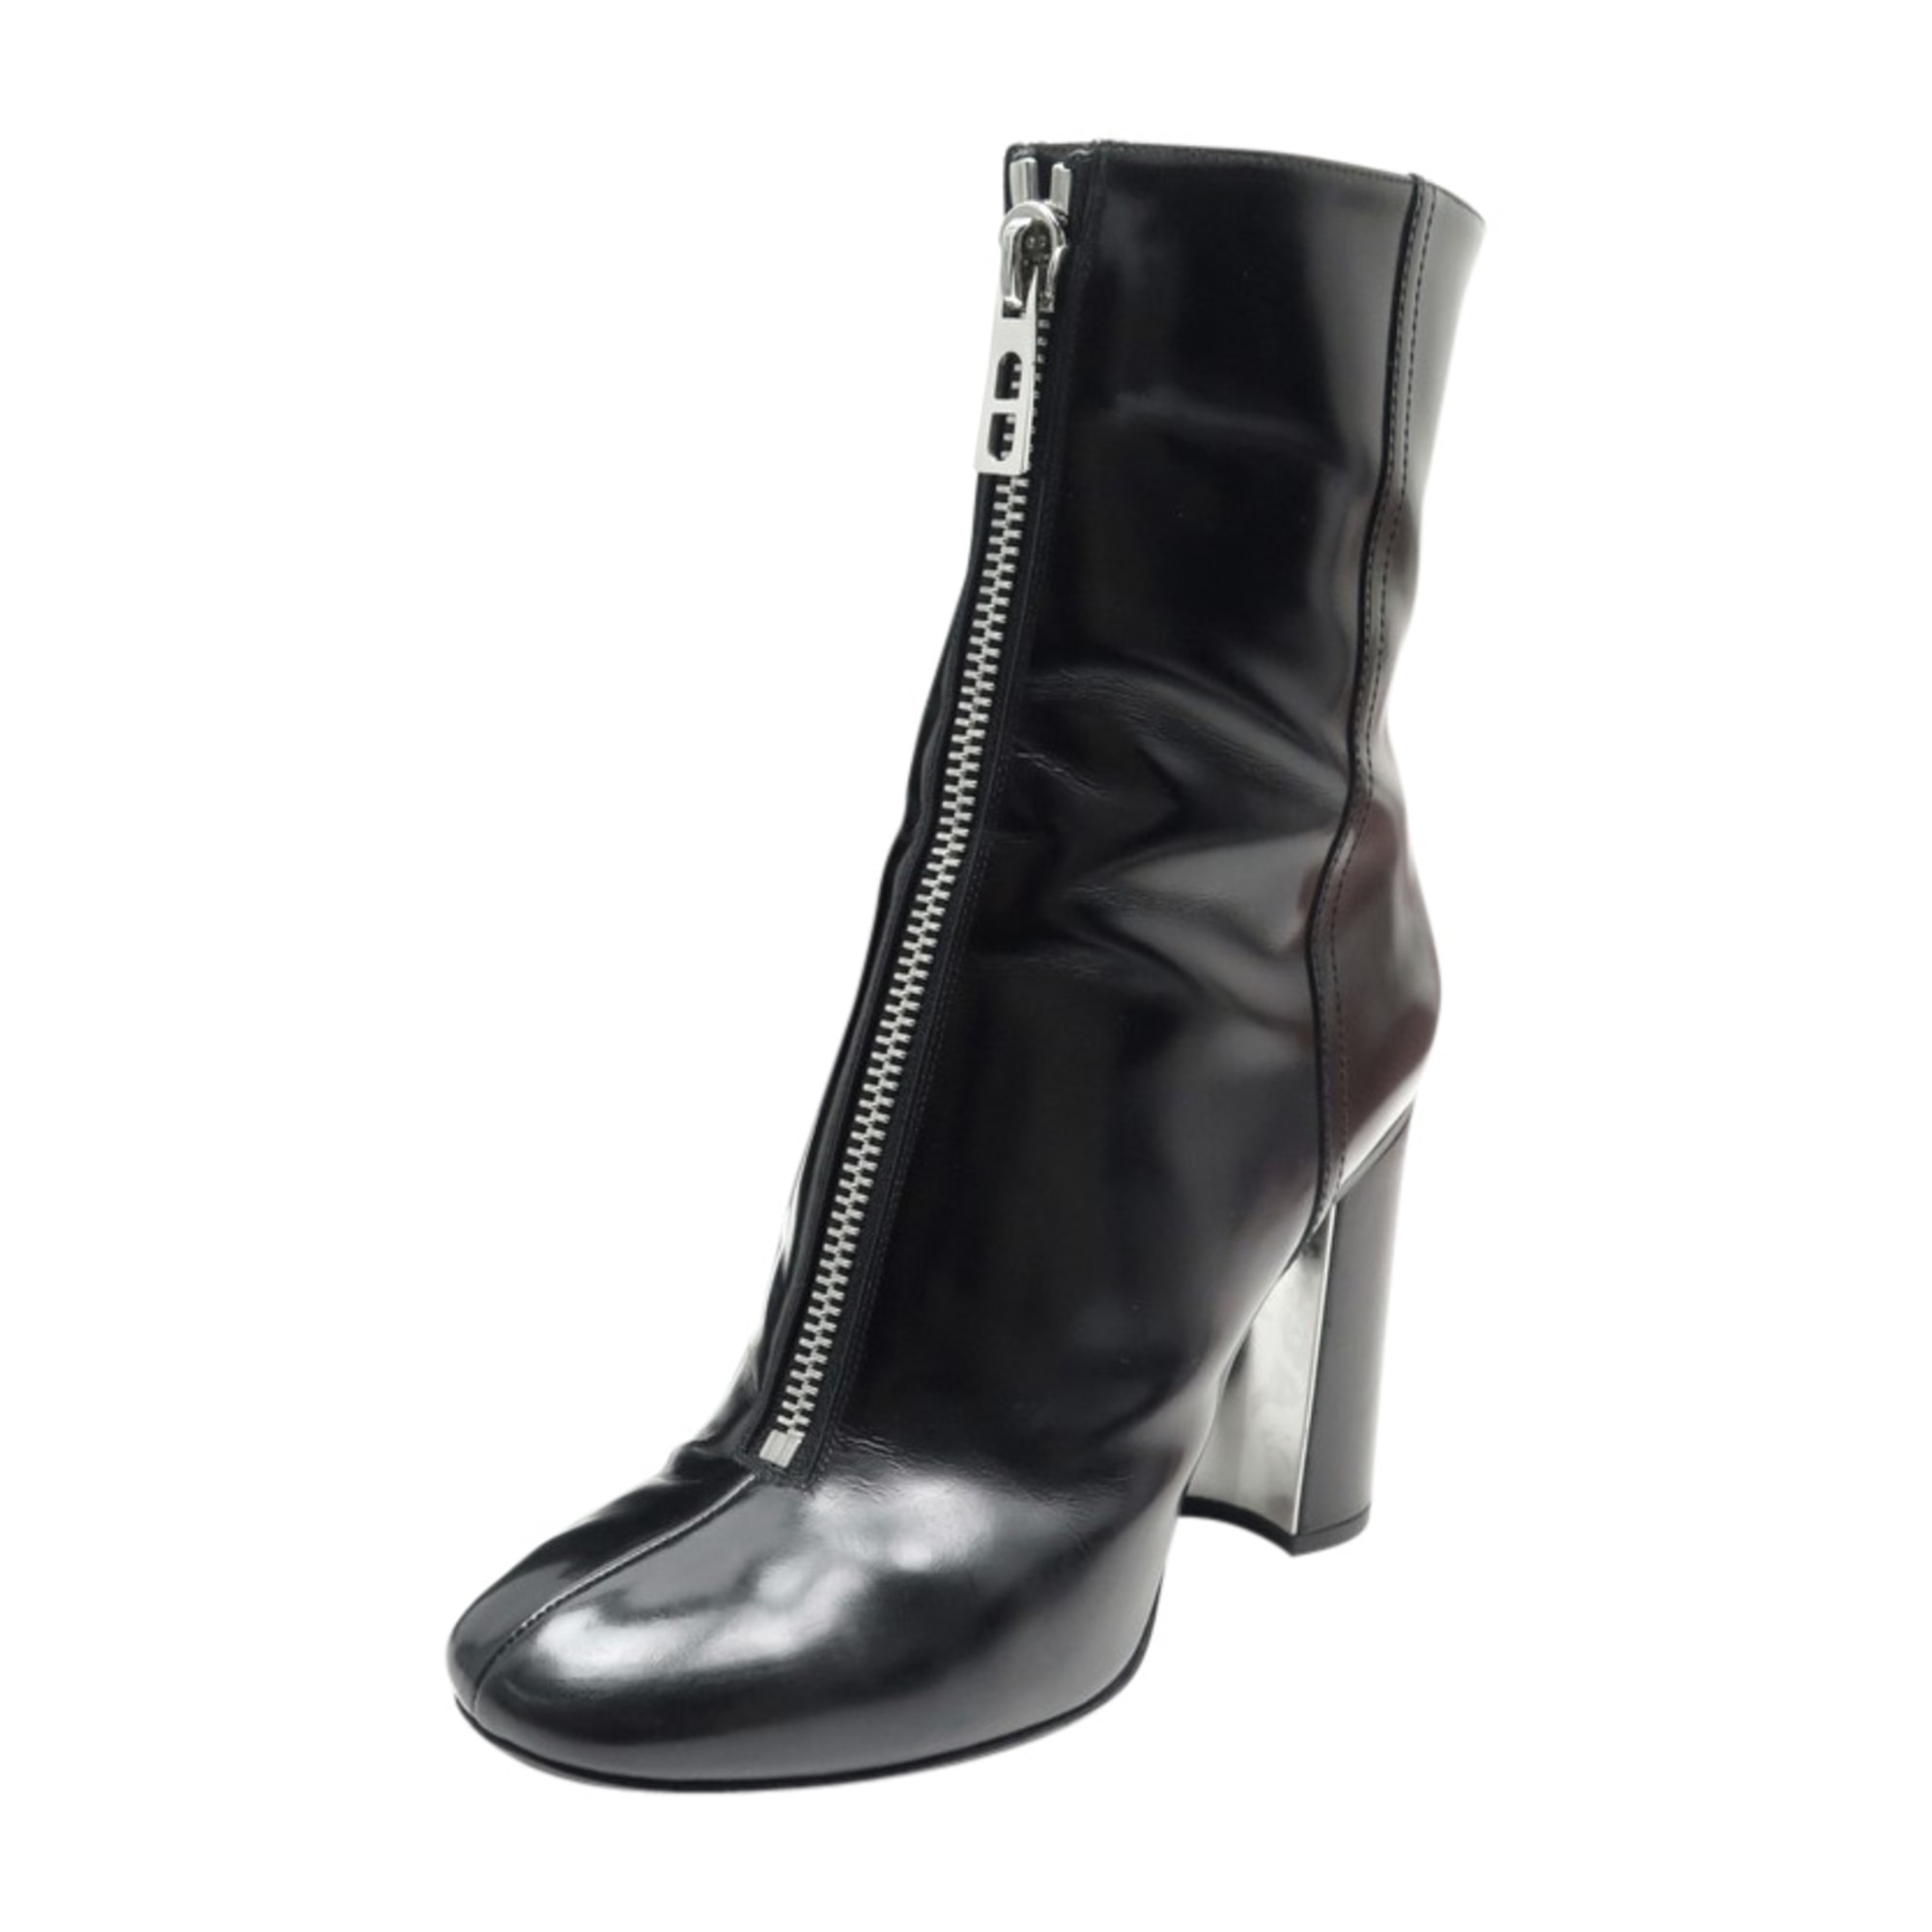 Bottines & low boots à talons HERMÈS Noir